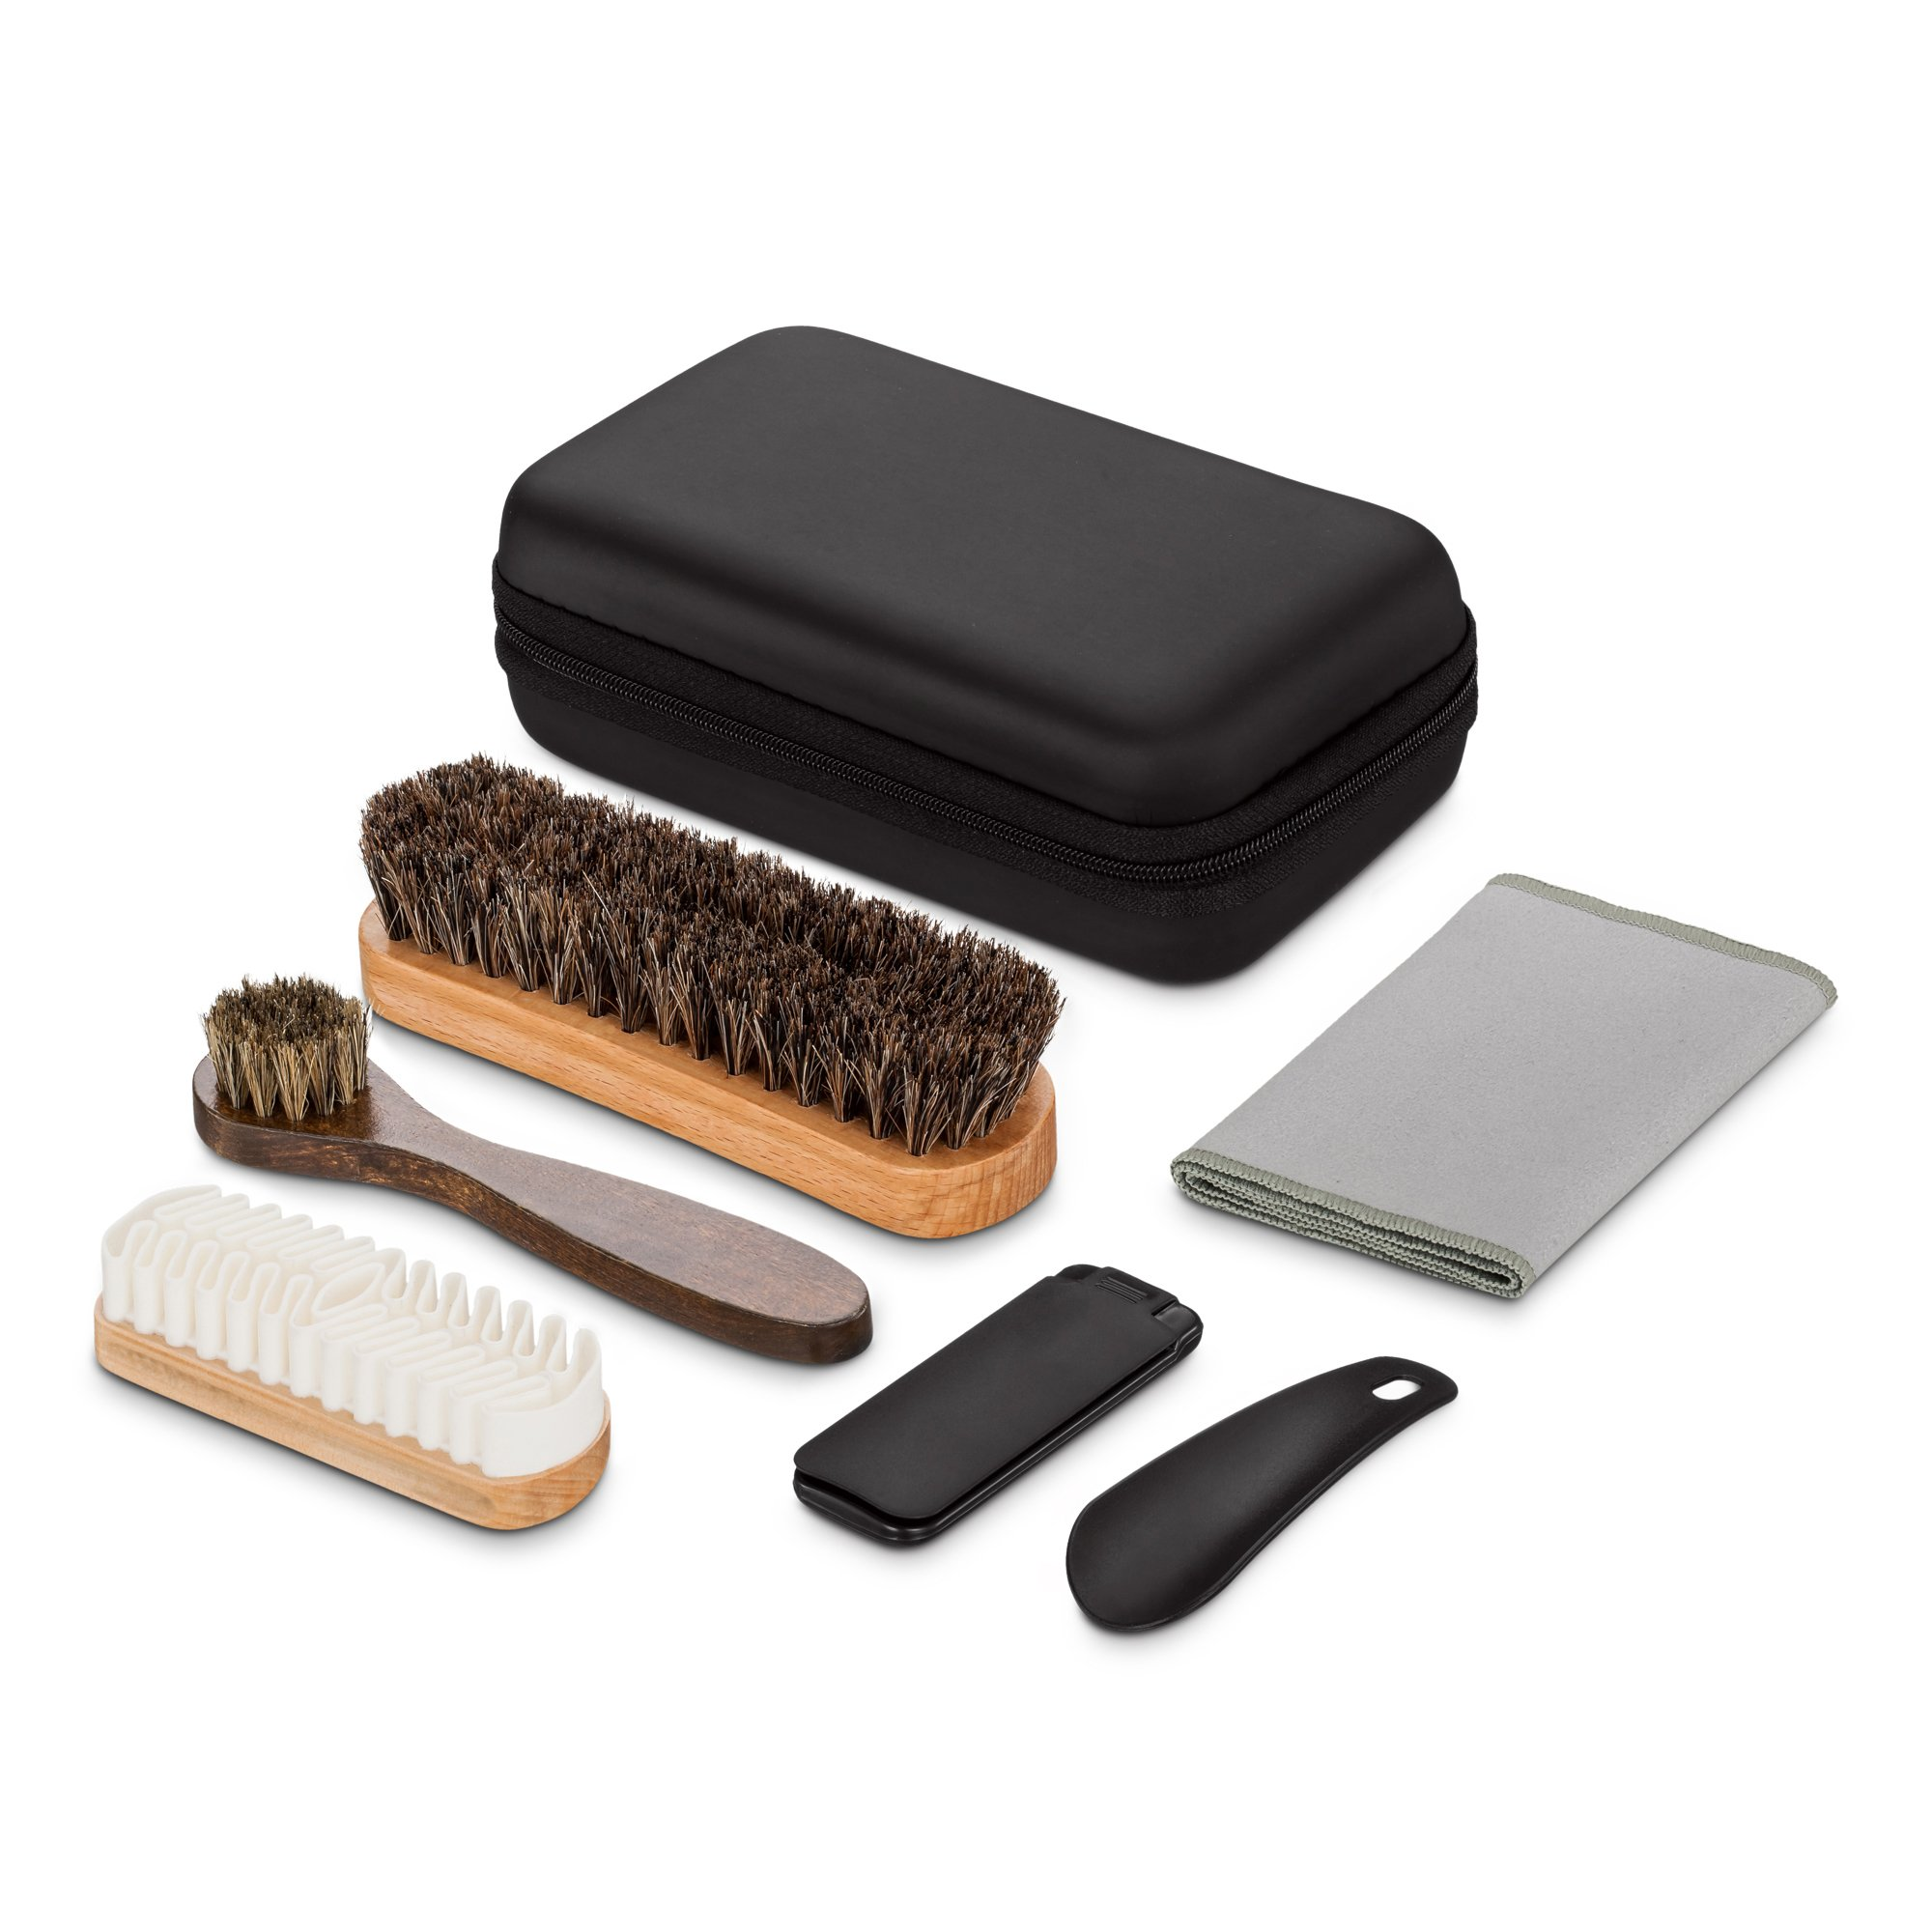 Shoe Brush Kit & Valet With Soft Horsehair Bristles & Rubber for Shoes, Dauber, Suede, Nubuck- 6 Pieces